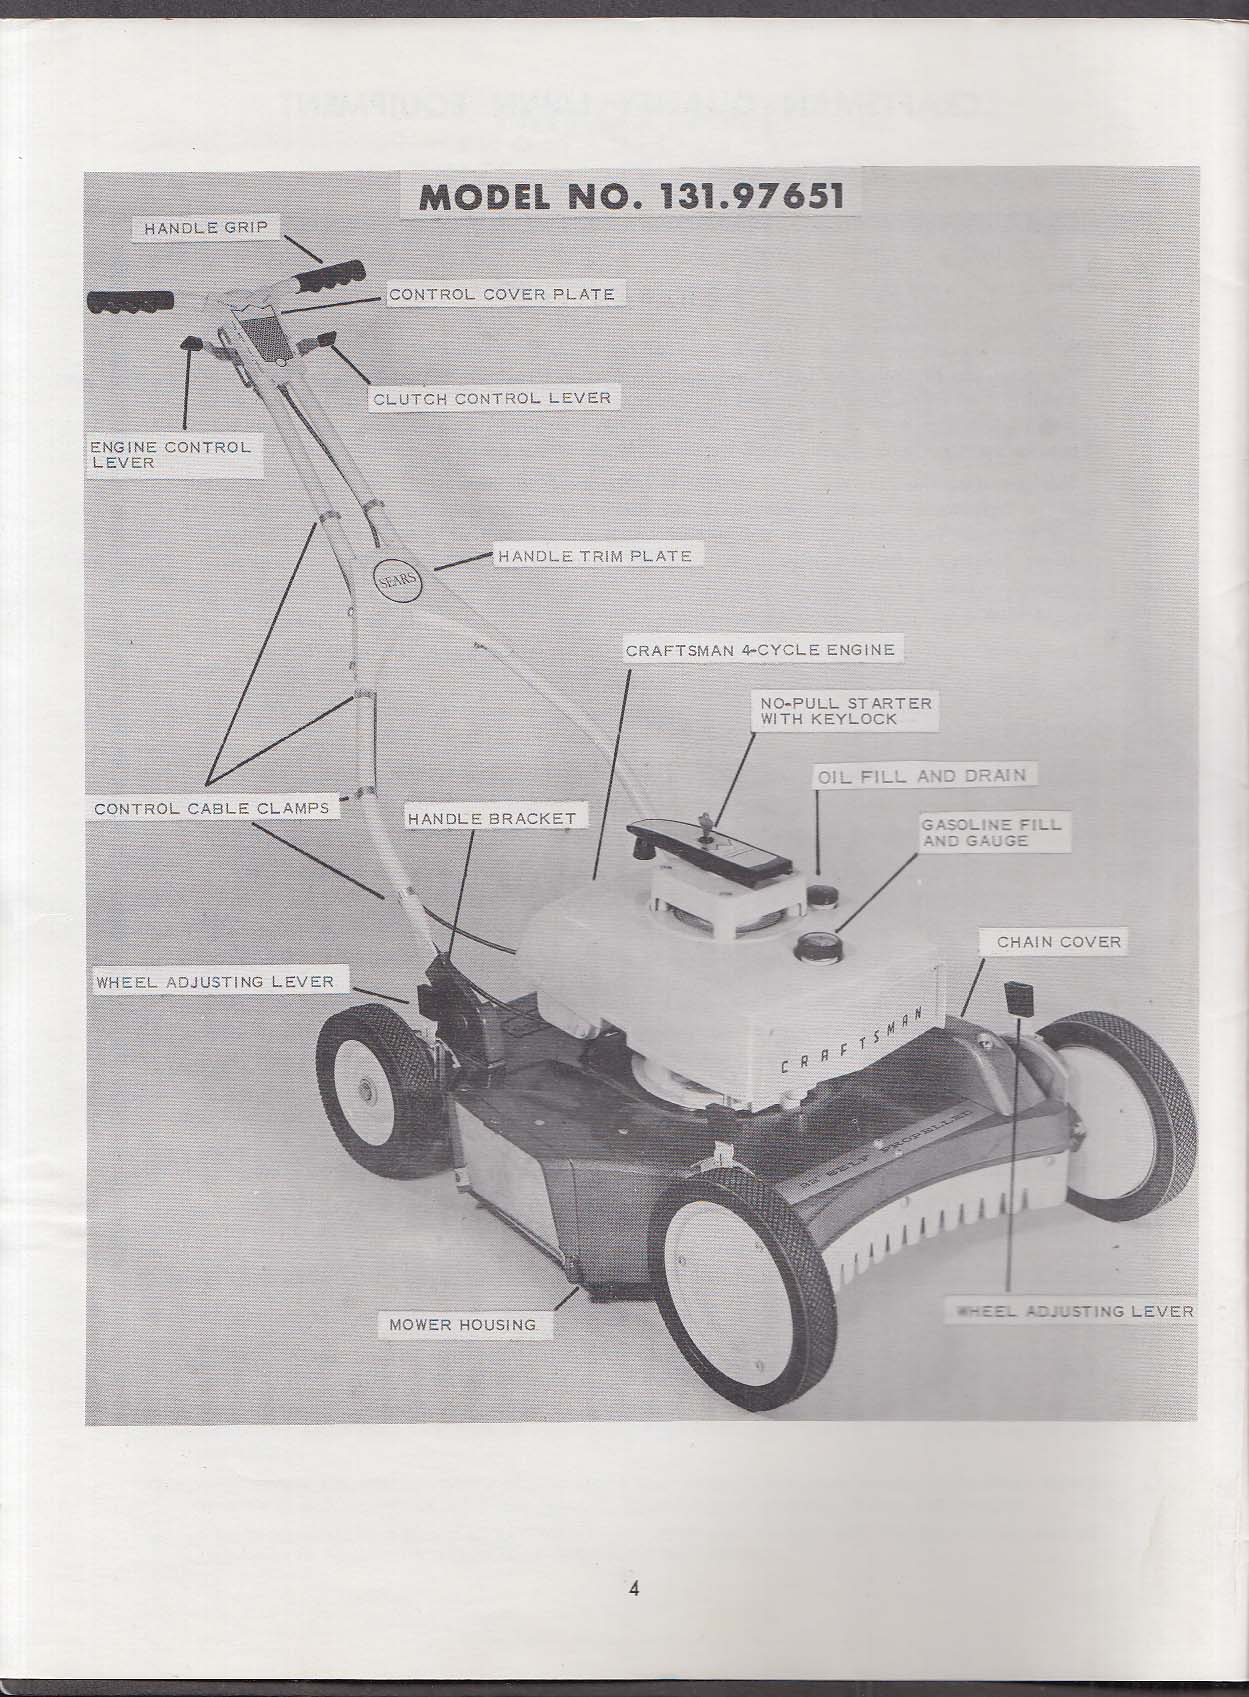 Craftsman Rotary Lawnmower manual Model # 131.97651 1960s